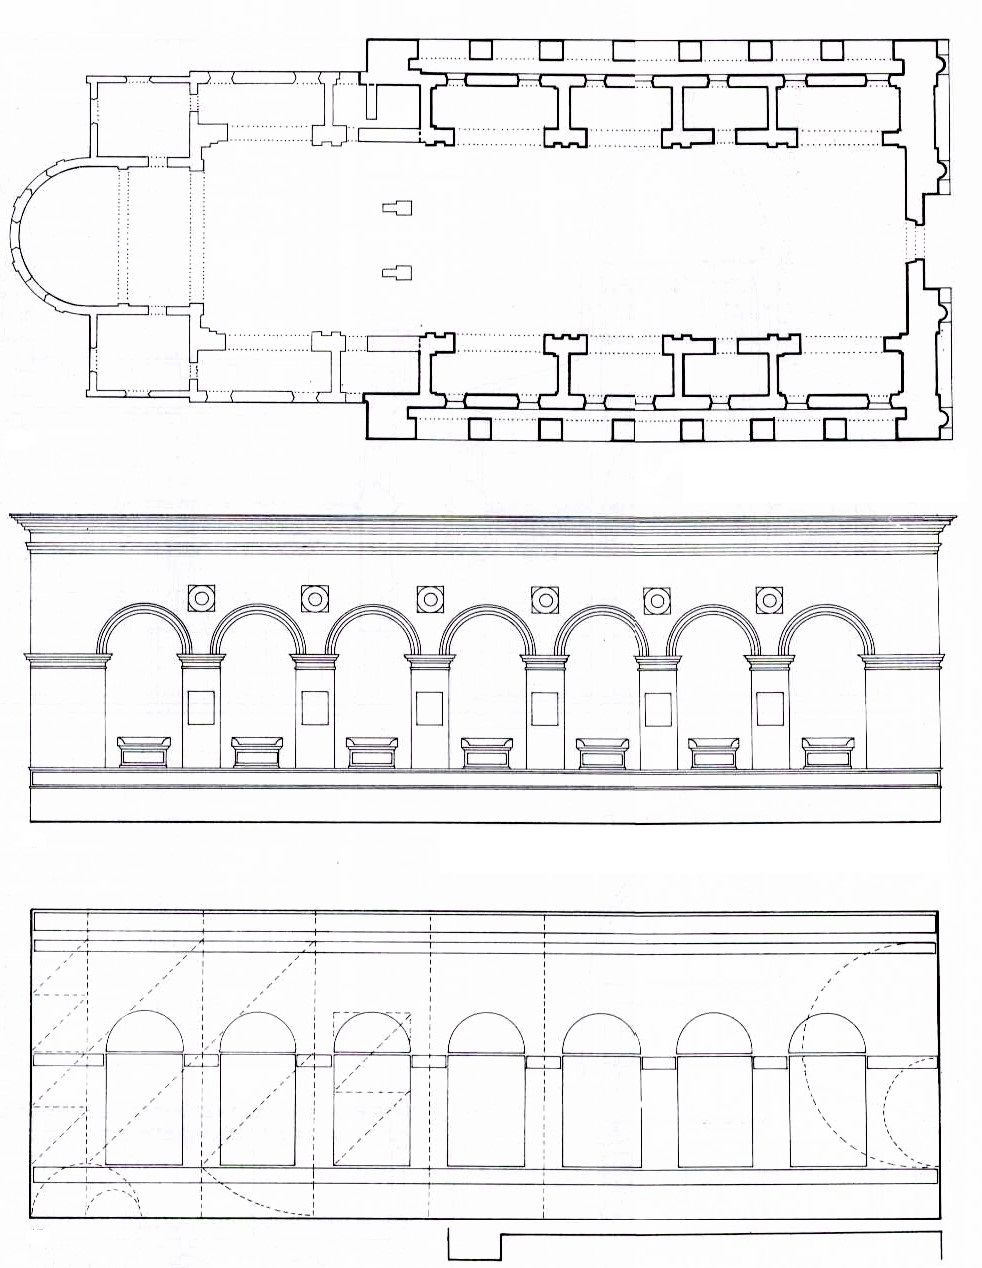 LEON BATTISTA ALBERTI Plan, Side elevation of first tier and geometrical scheme of side elevation, Tempio Malatestiano. 1468, Rimini. The construction of Tempio Malatestiano was begun by the order of Sigismondo Pandolfo Maslatesta, but remain incomplete. When Aberti took over the project, he did not remodeled it, but build a new structure around it.